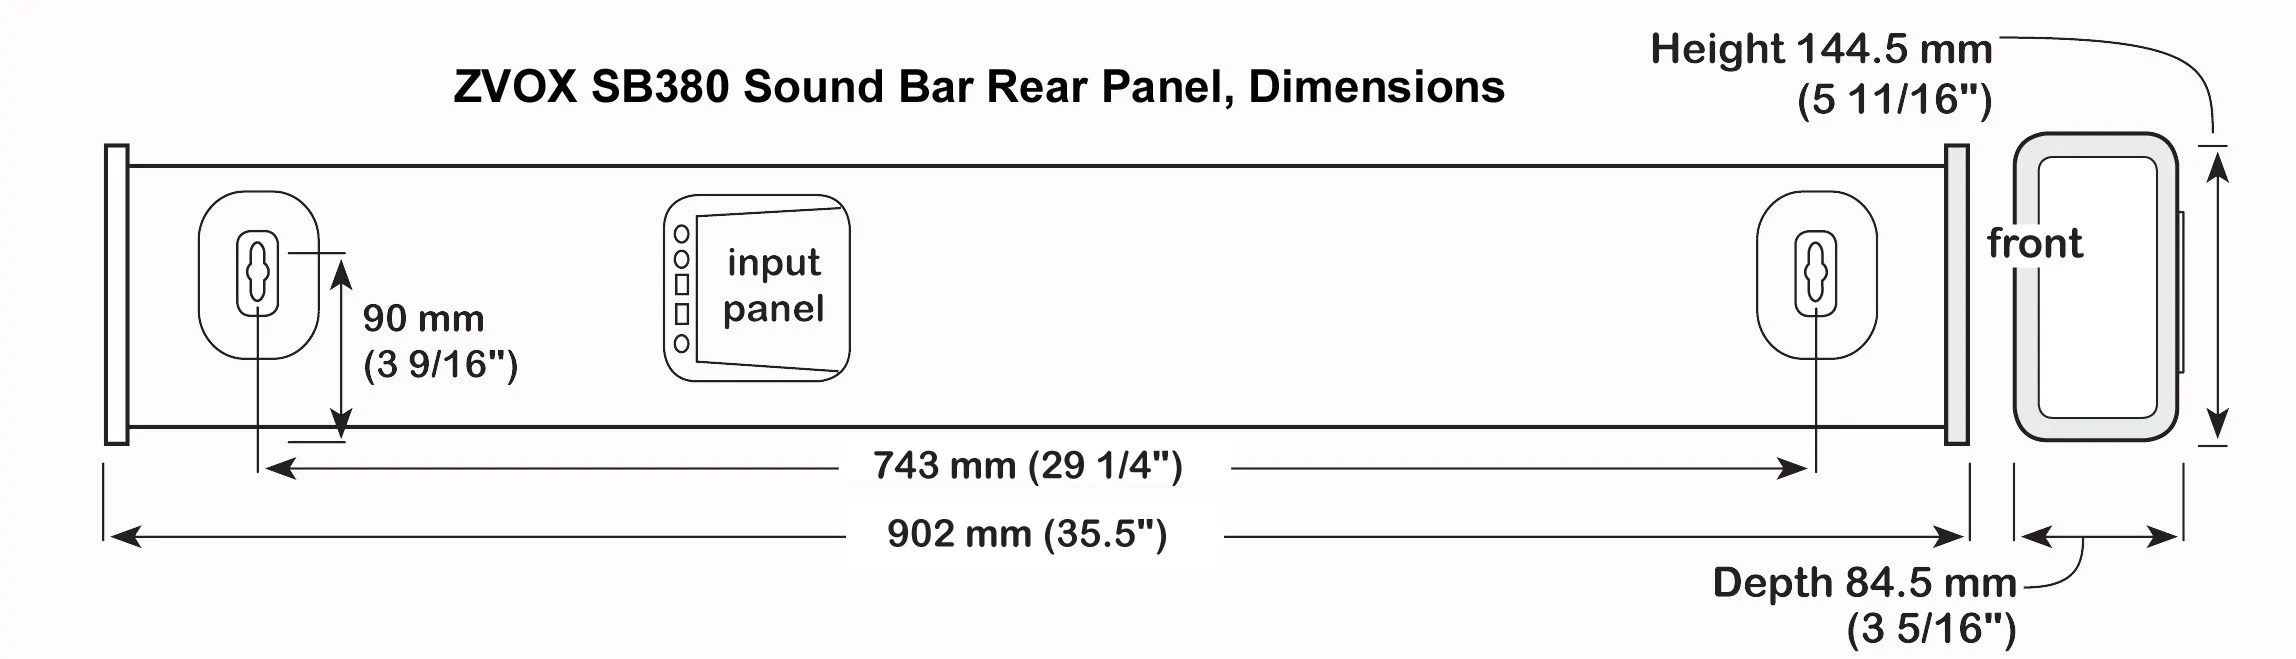 medium resolution of click here to download sb380 sound bar back panel illustration and dimensions